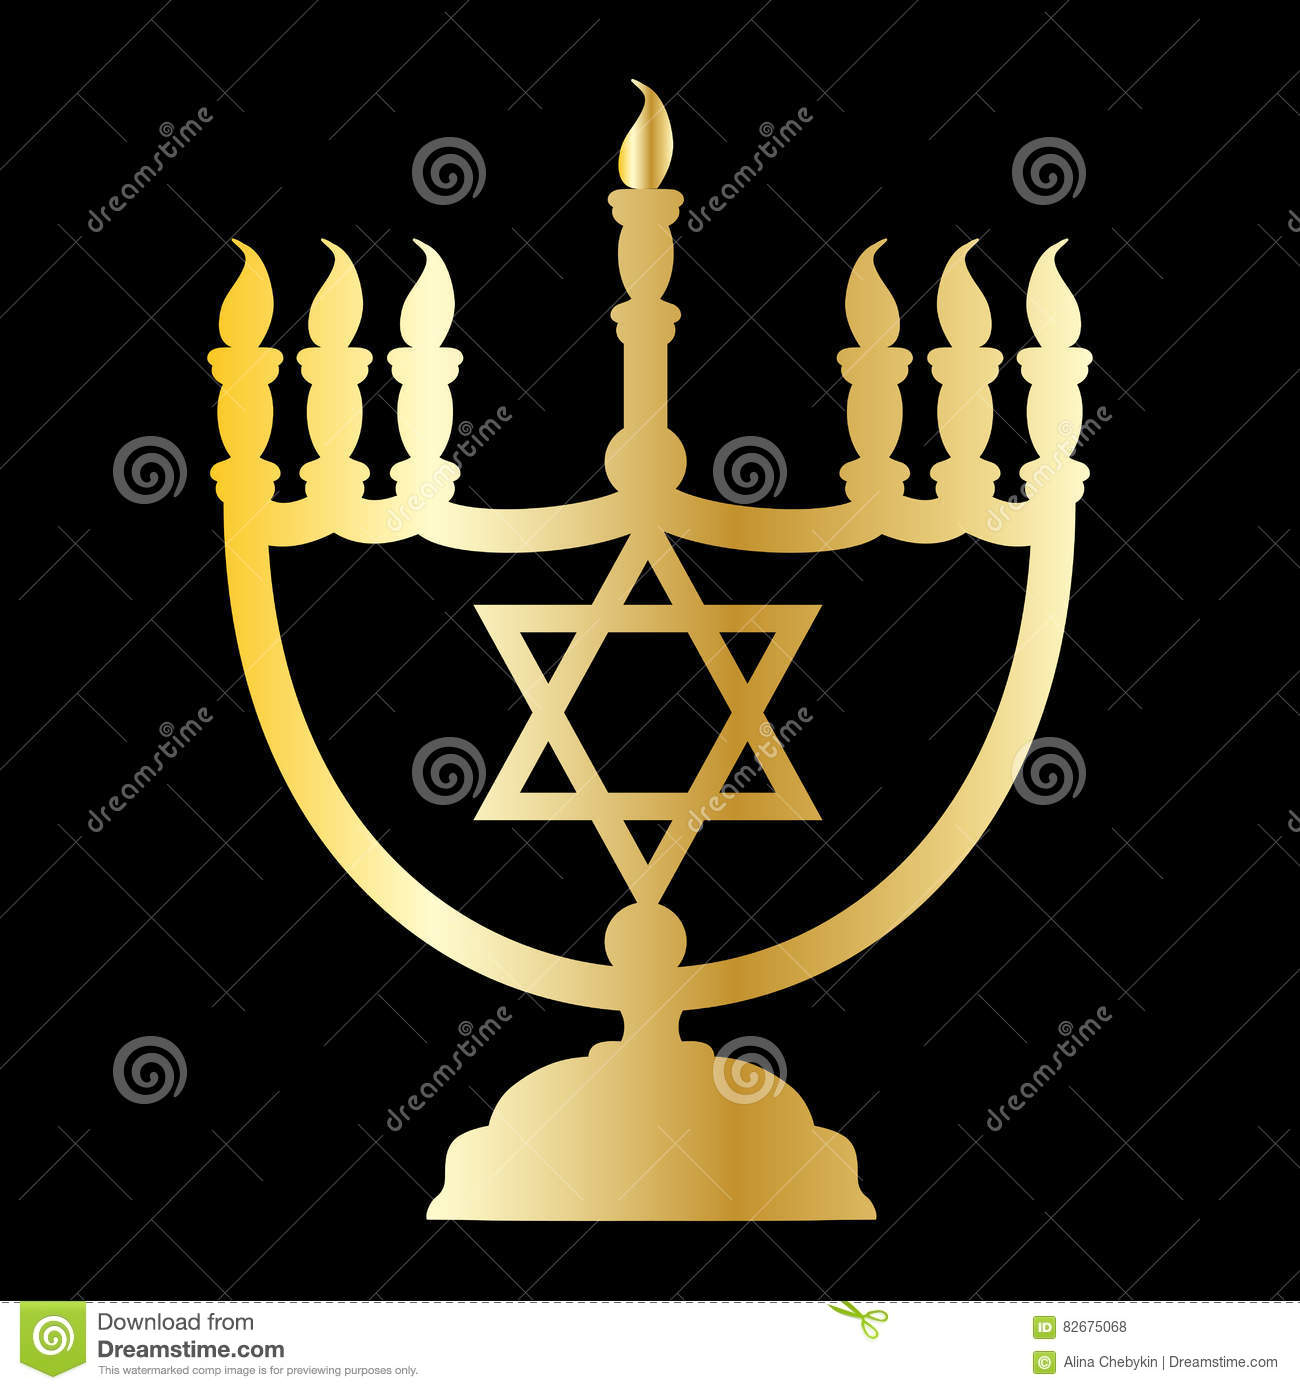 Drawing Gold Silhouette Menorah Jewish Star Black Background Traditional Jewish Candle Holder Seven